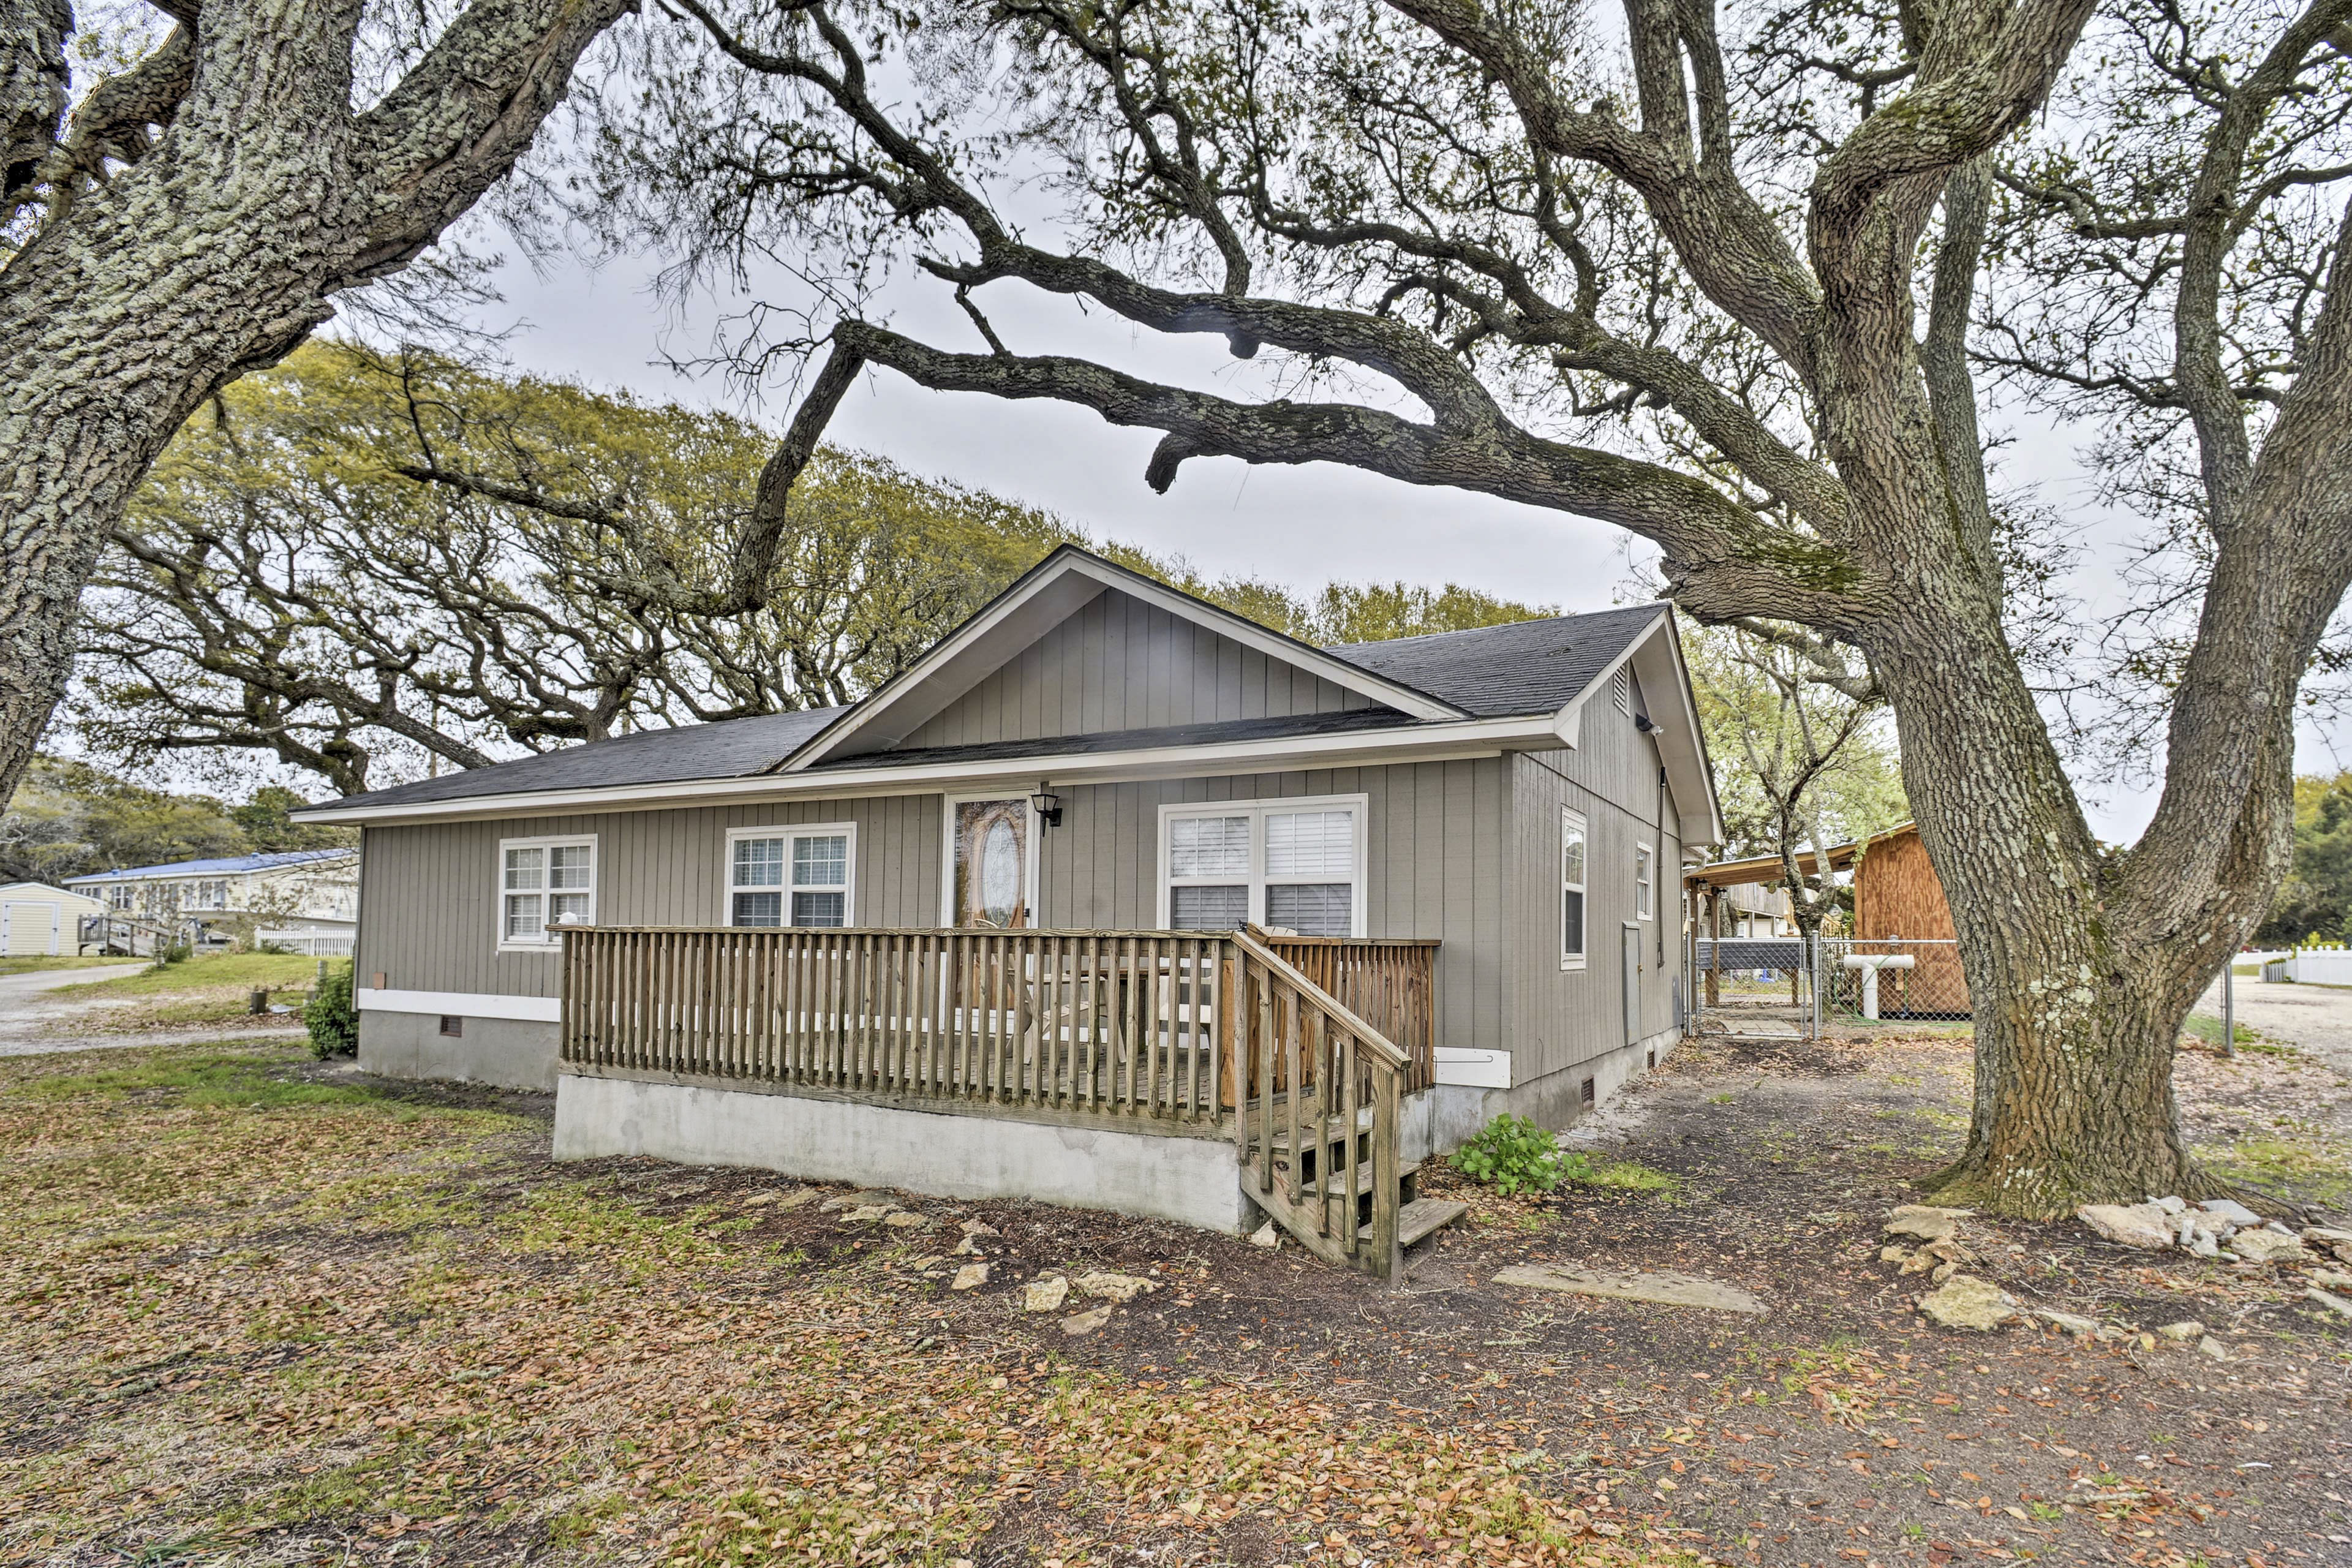 Call this cozy vacation rental house home while staying in Salter Path!